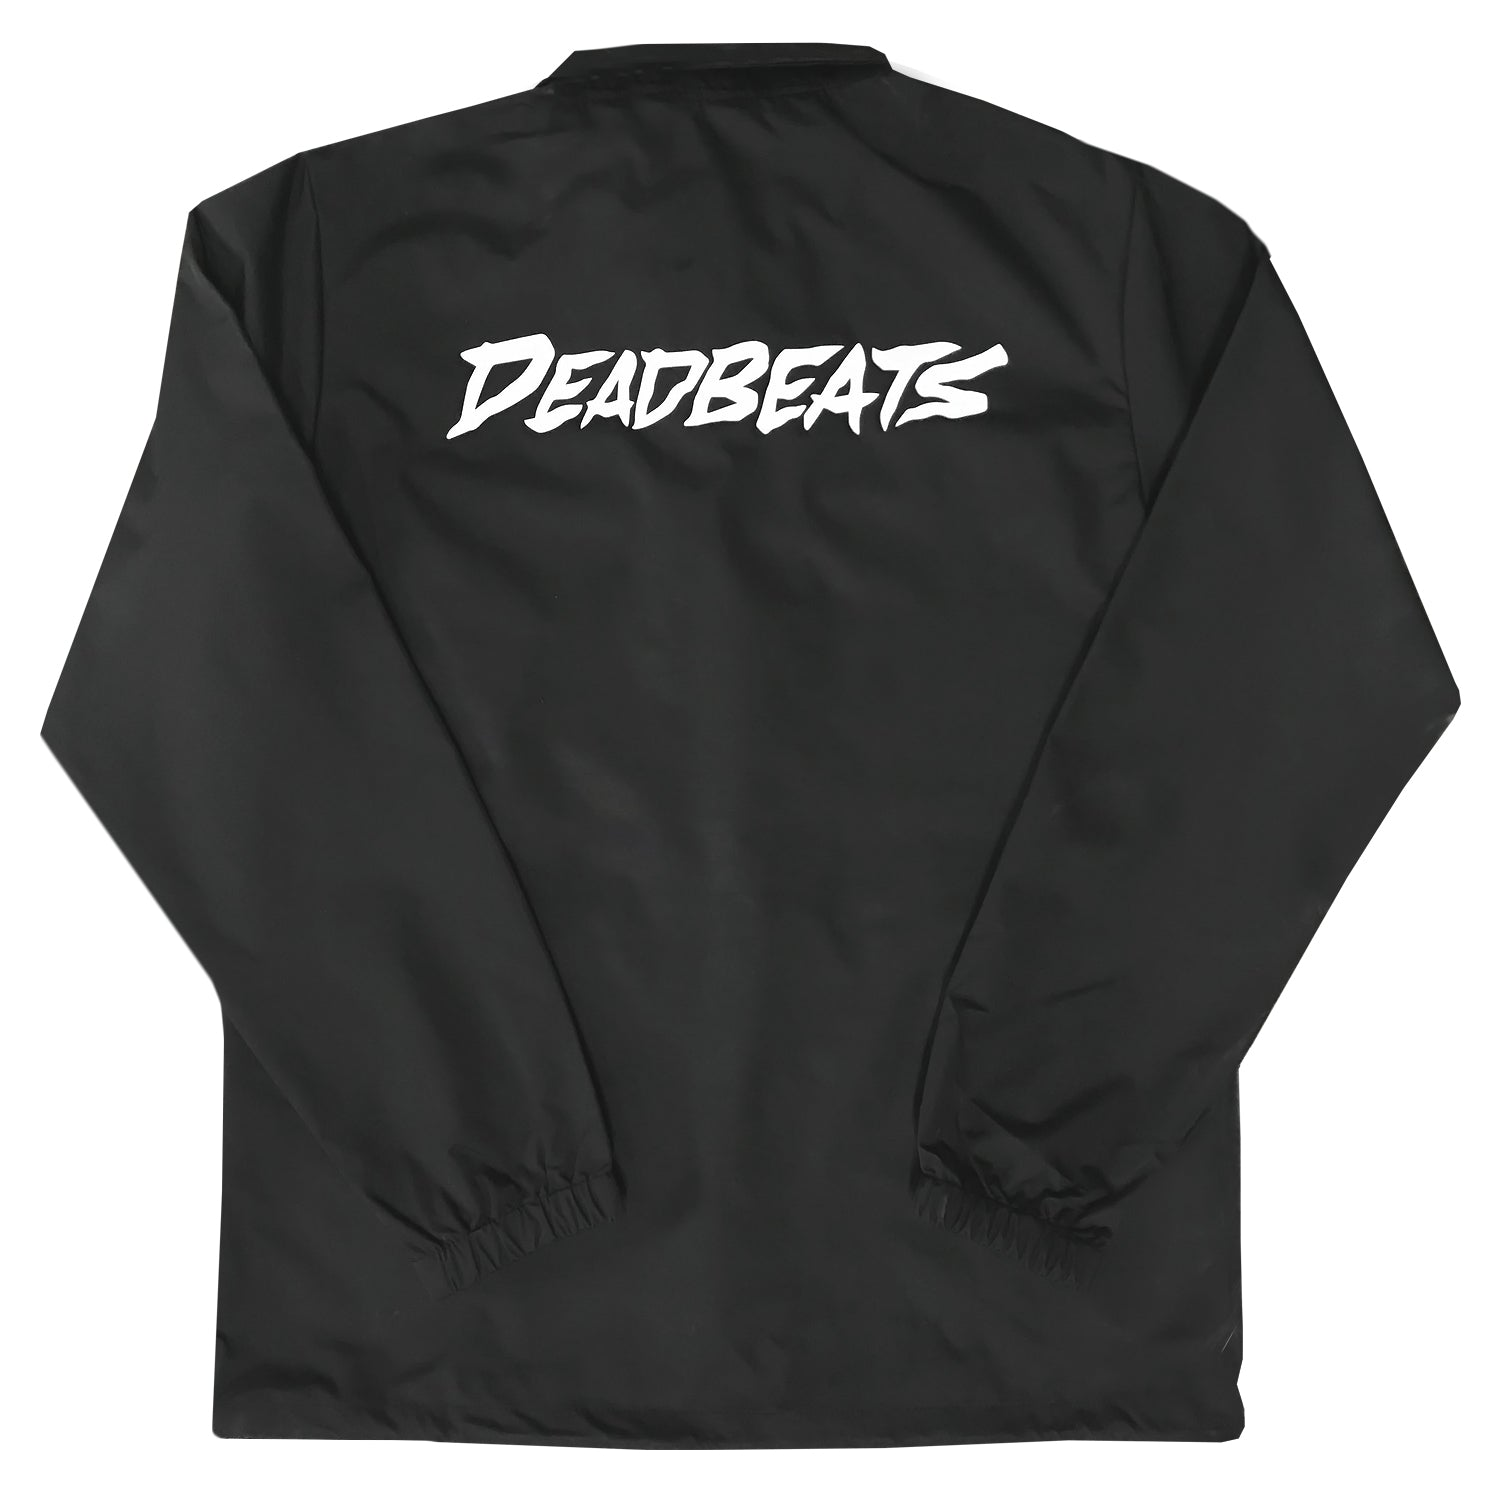 Deadbeats - Limited Edition Coach Jacket - Black